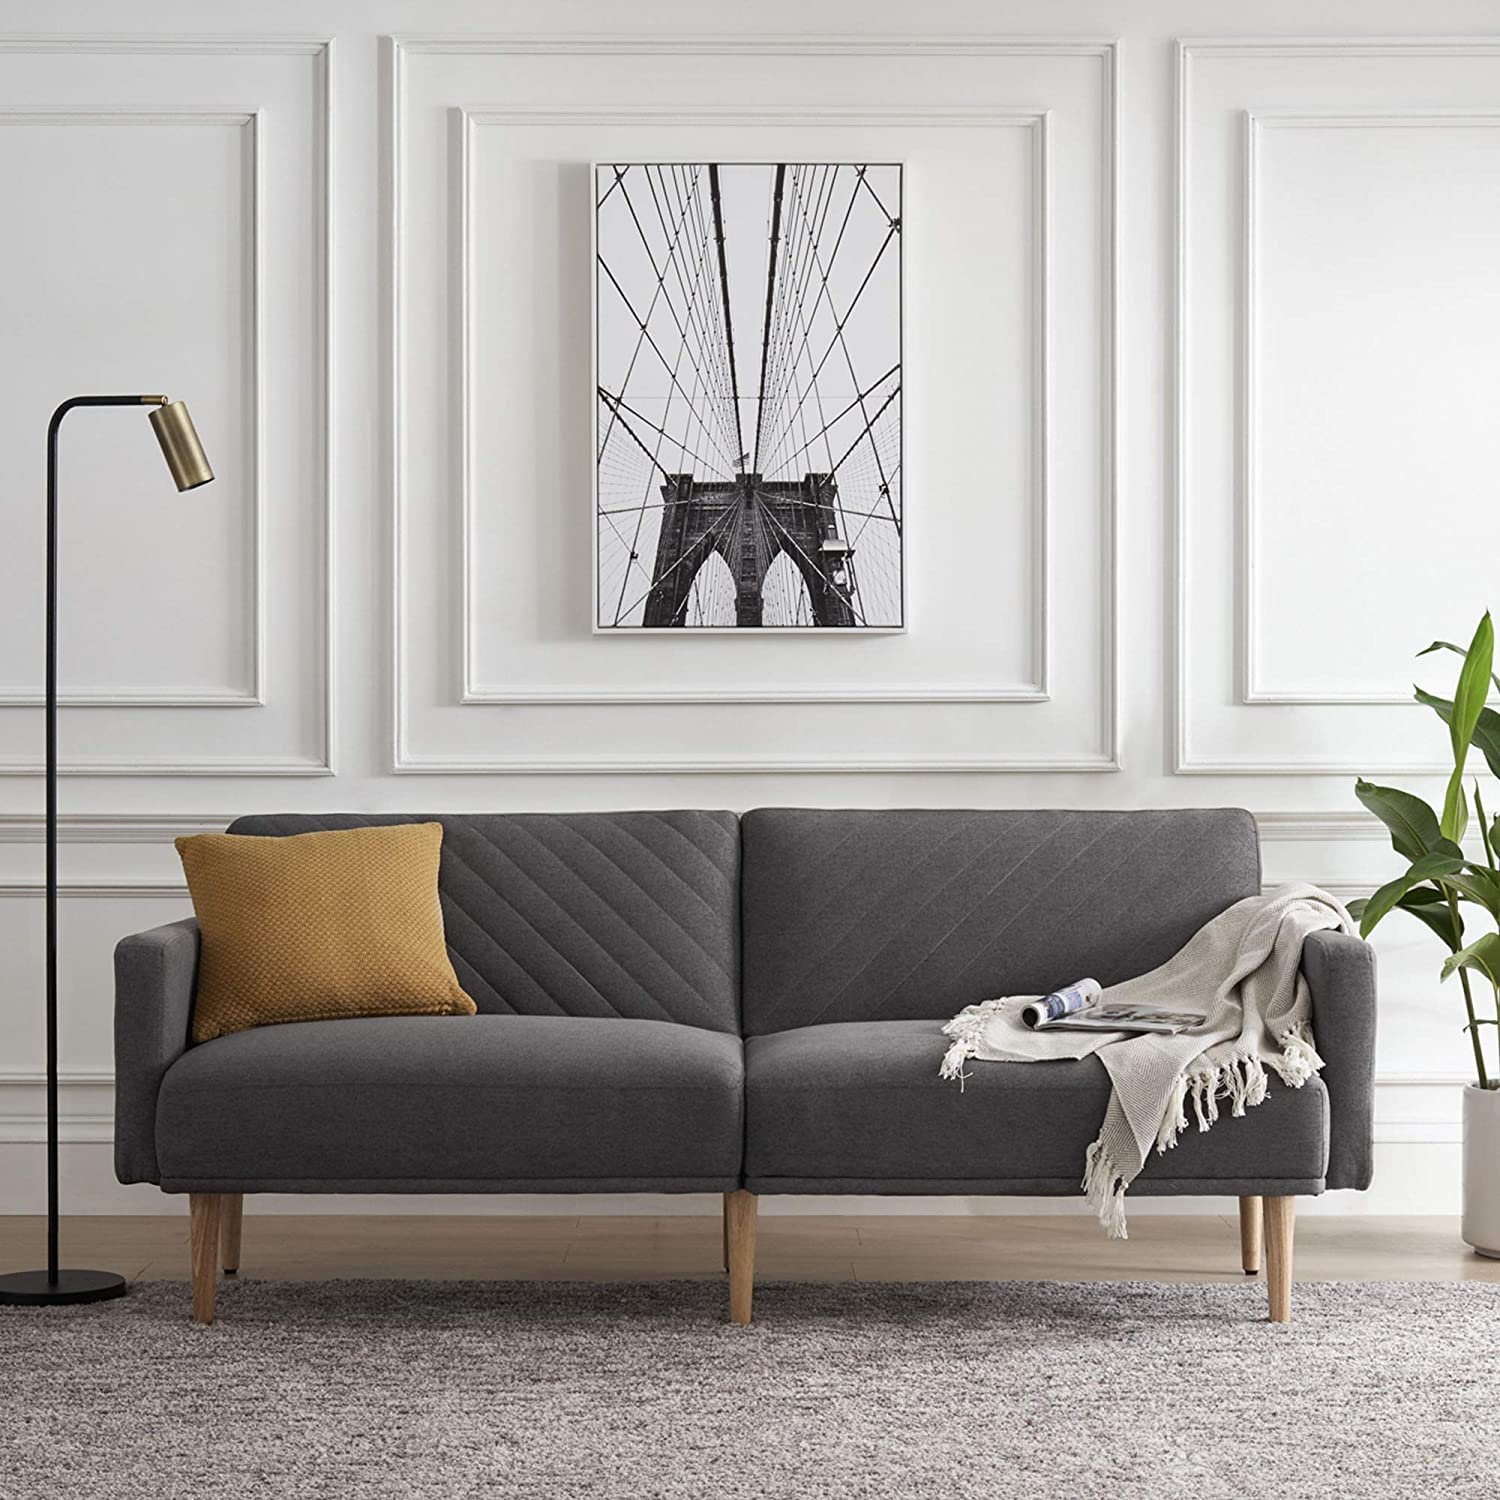 small-sleeper-sofa-super-modern-design-inexpensive-space-saving-furniture-for-living-room-bedroom-or-office